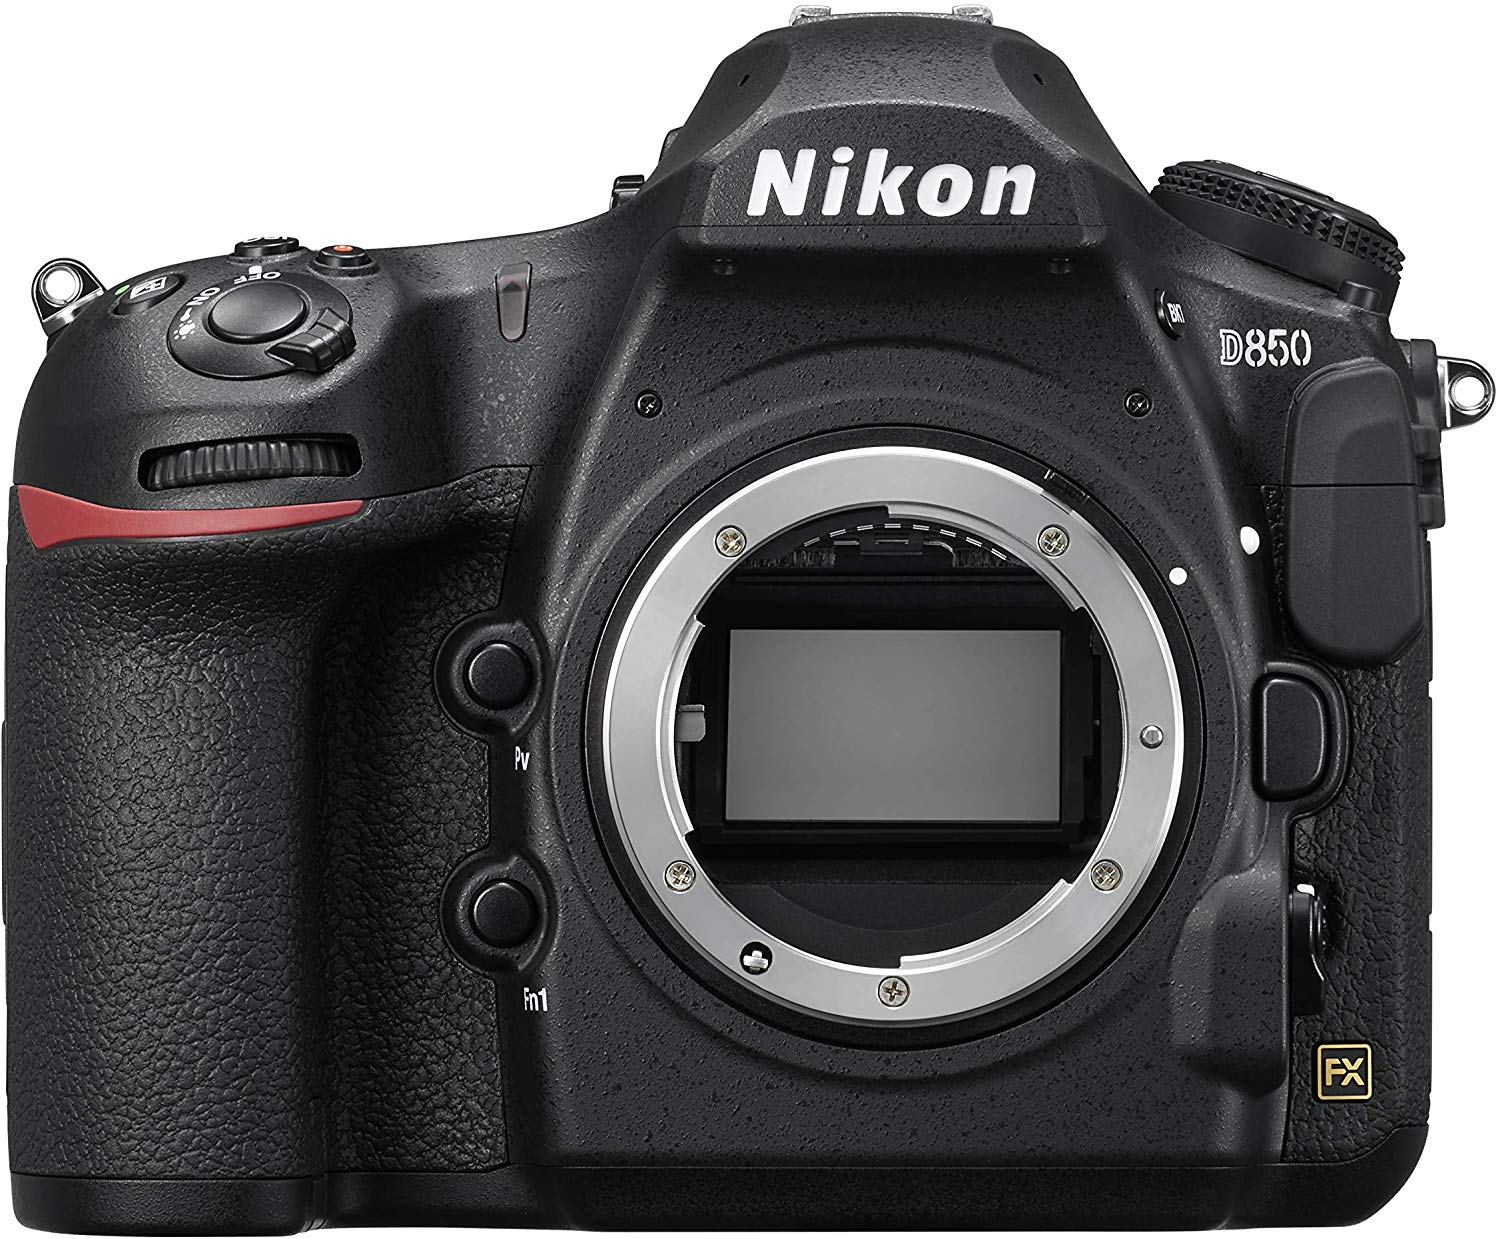 the nikon d850 dslr is one of the best dslr travel cameras